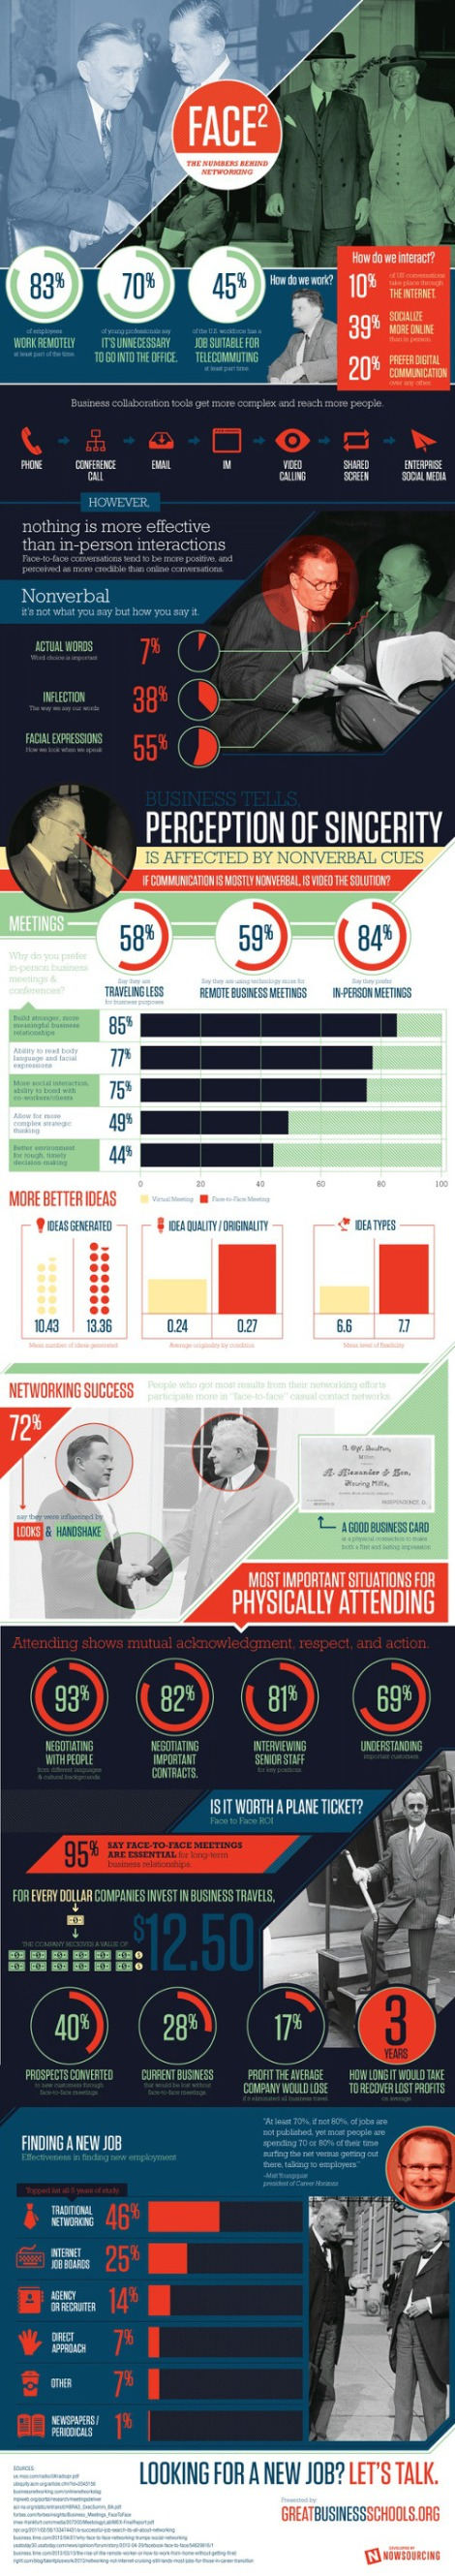 Face 2 Face networking infographic